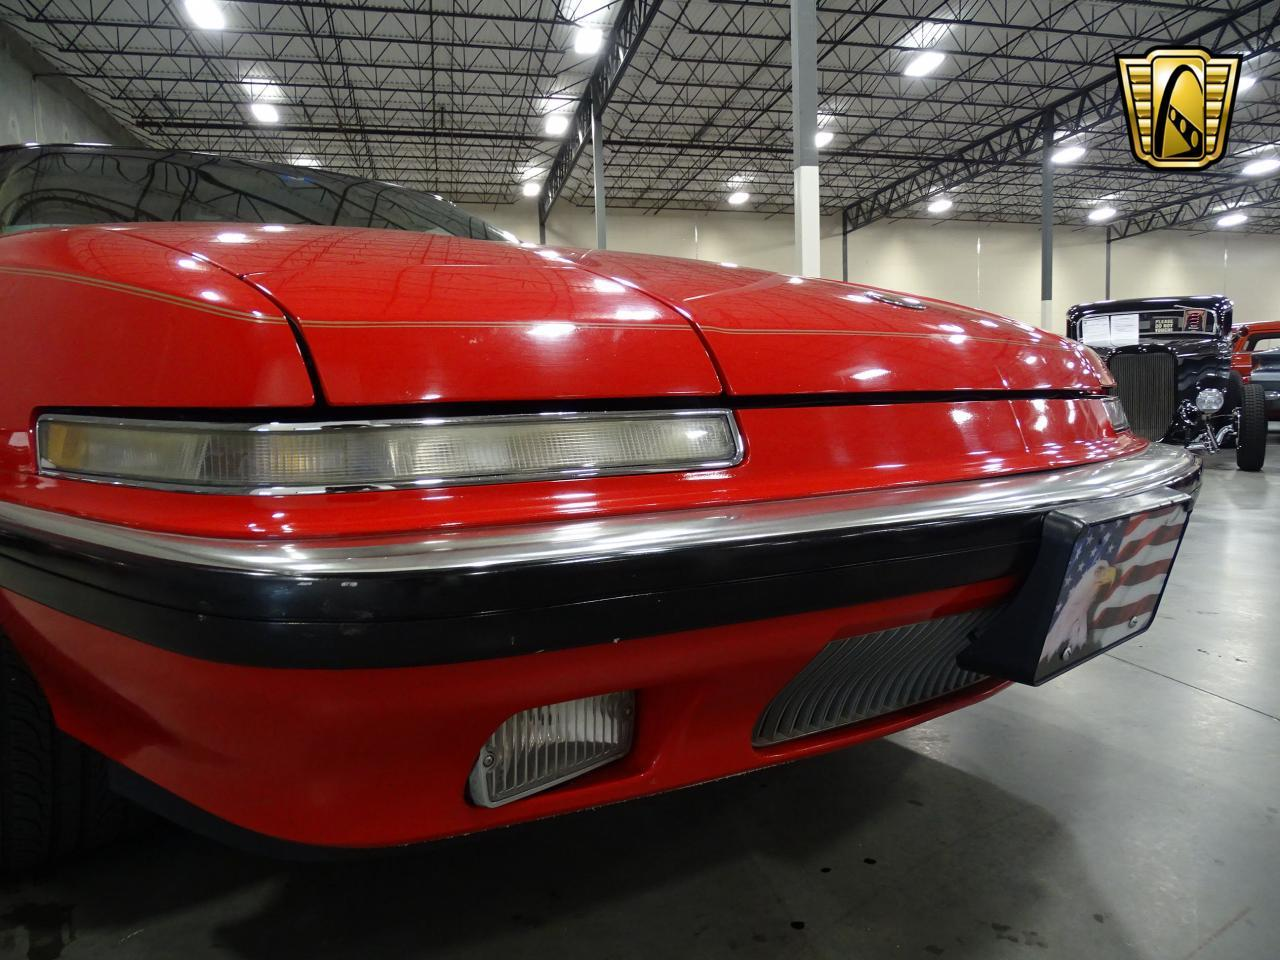 Large Picture of 1990 Buick Reatta located in DFW Airport Texas - $8,995.00 - KOB1